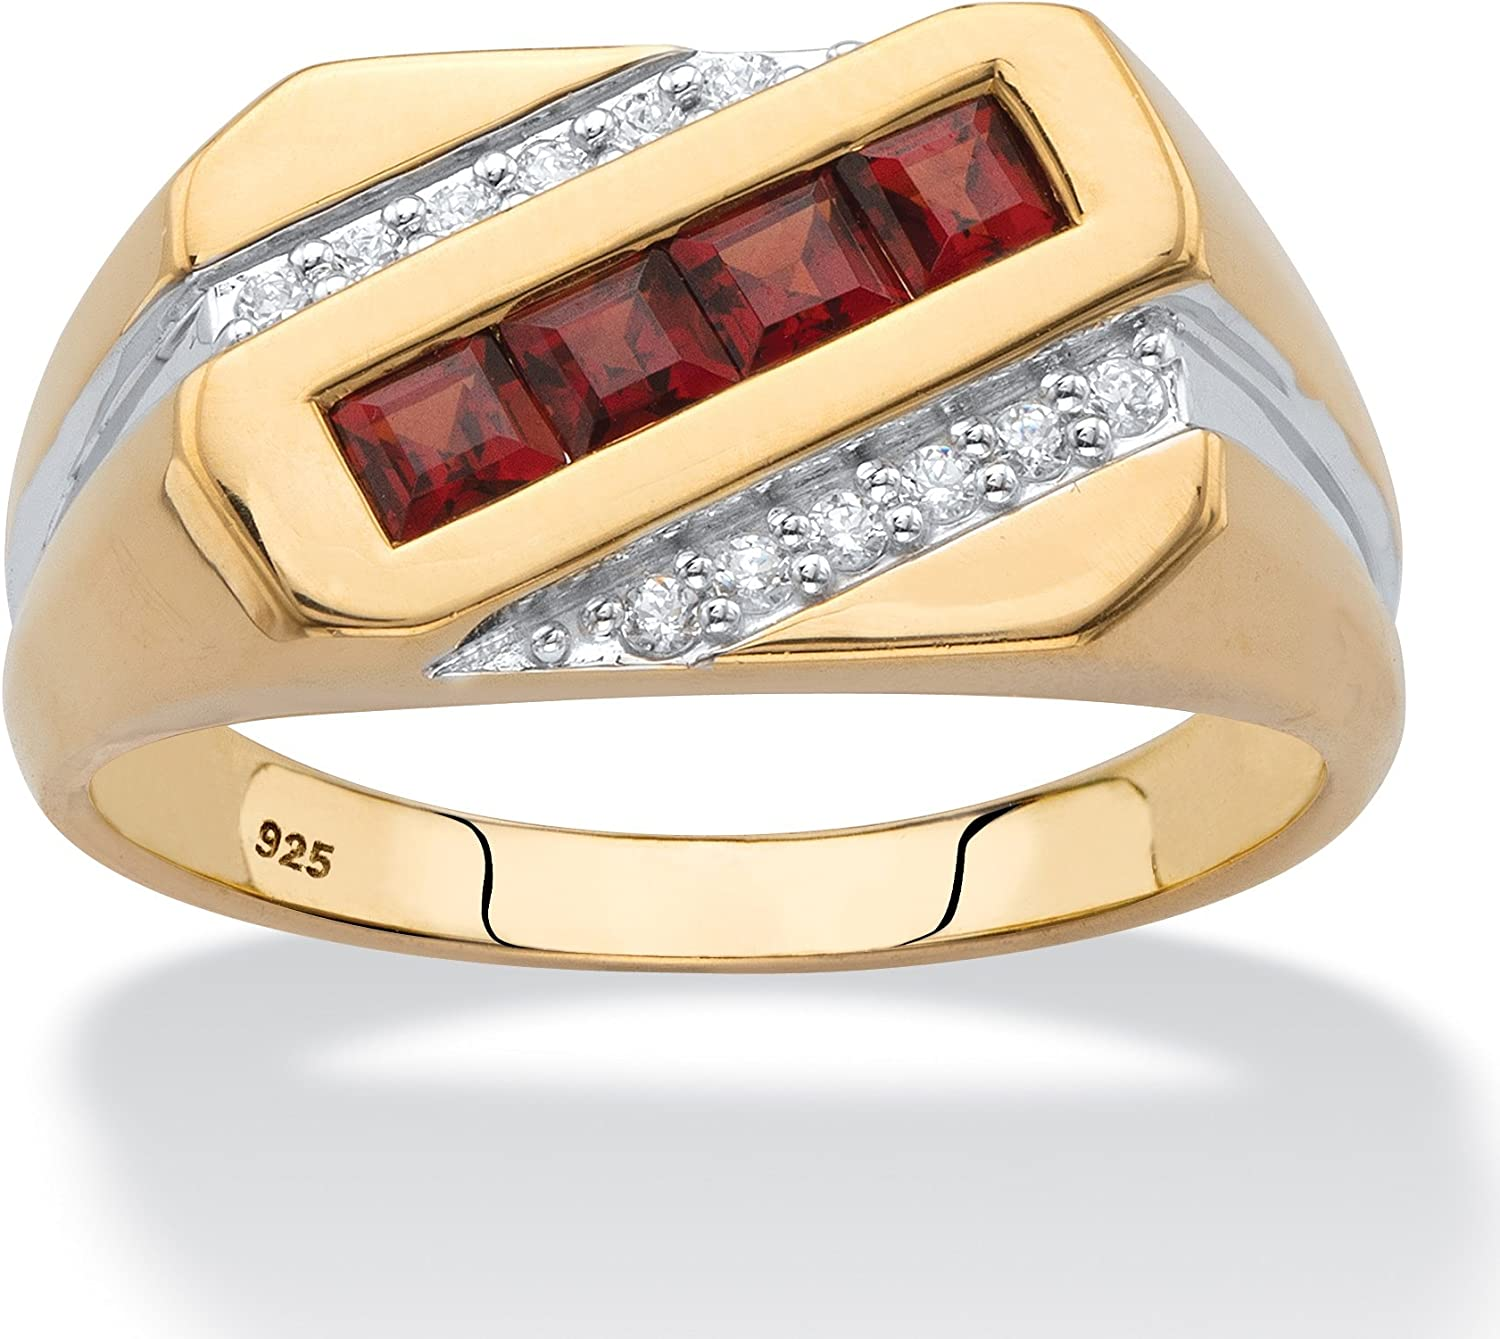 Men's 18K Yellow Gold over Sterling Silver Square Cut Genuine Red Garnet and Diamond Accent Diagonal Ring